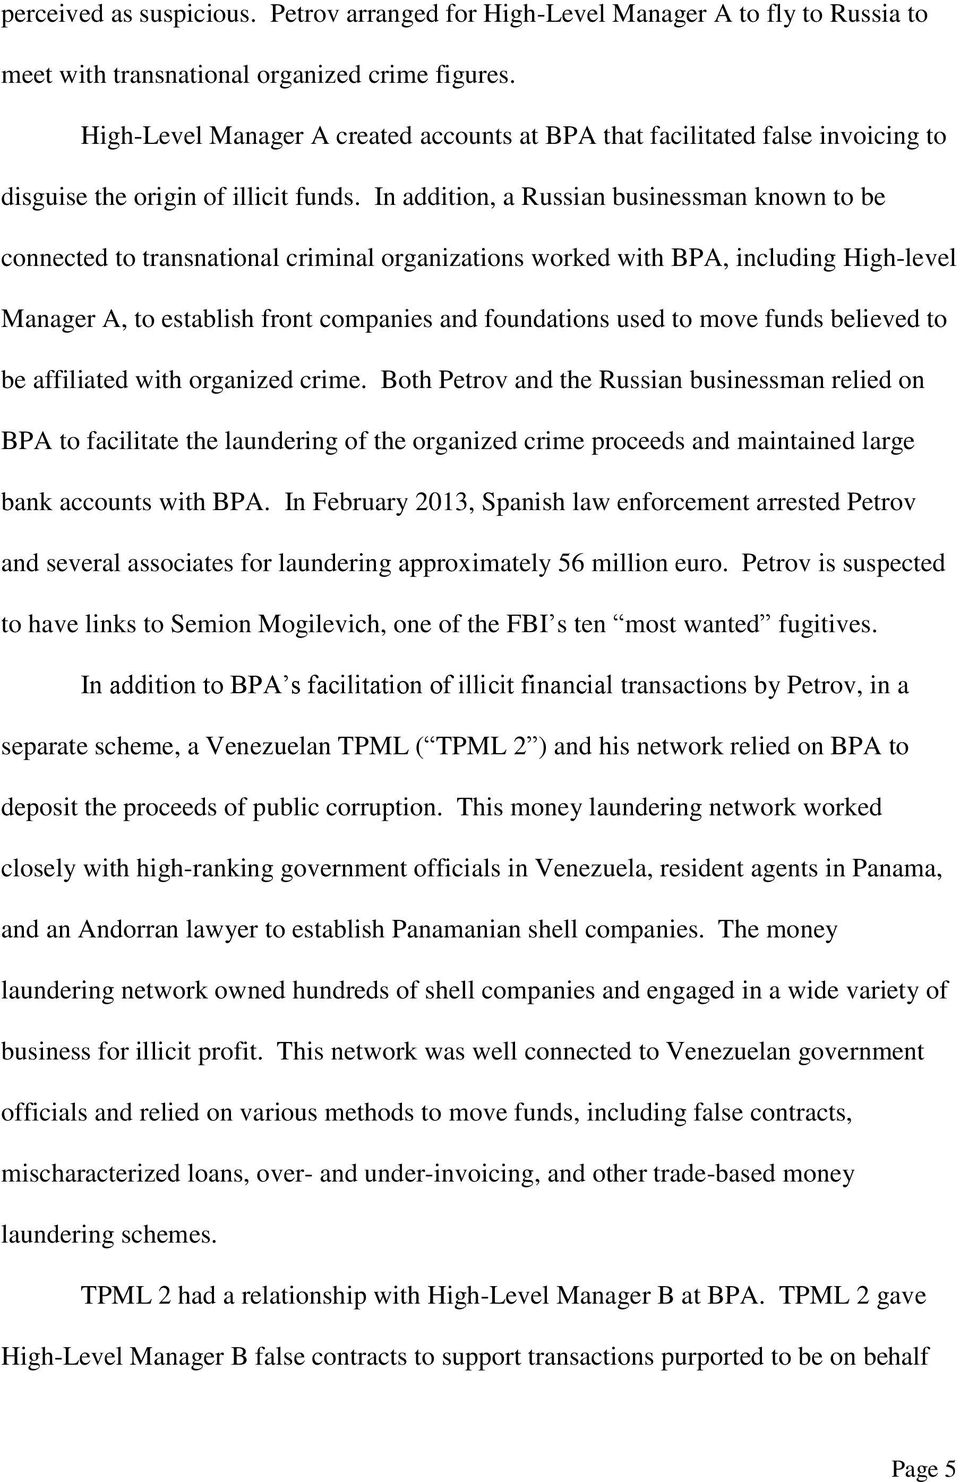 In addition, a Russian businessman known to be connected to transnational criminal organizations worked with BPA, including High-level Manager A, to establish front companies and foundations used to